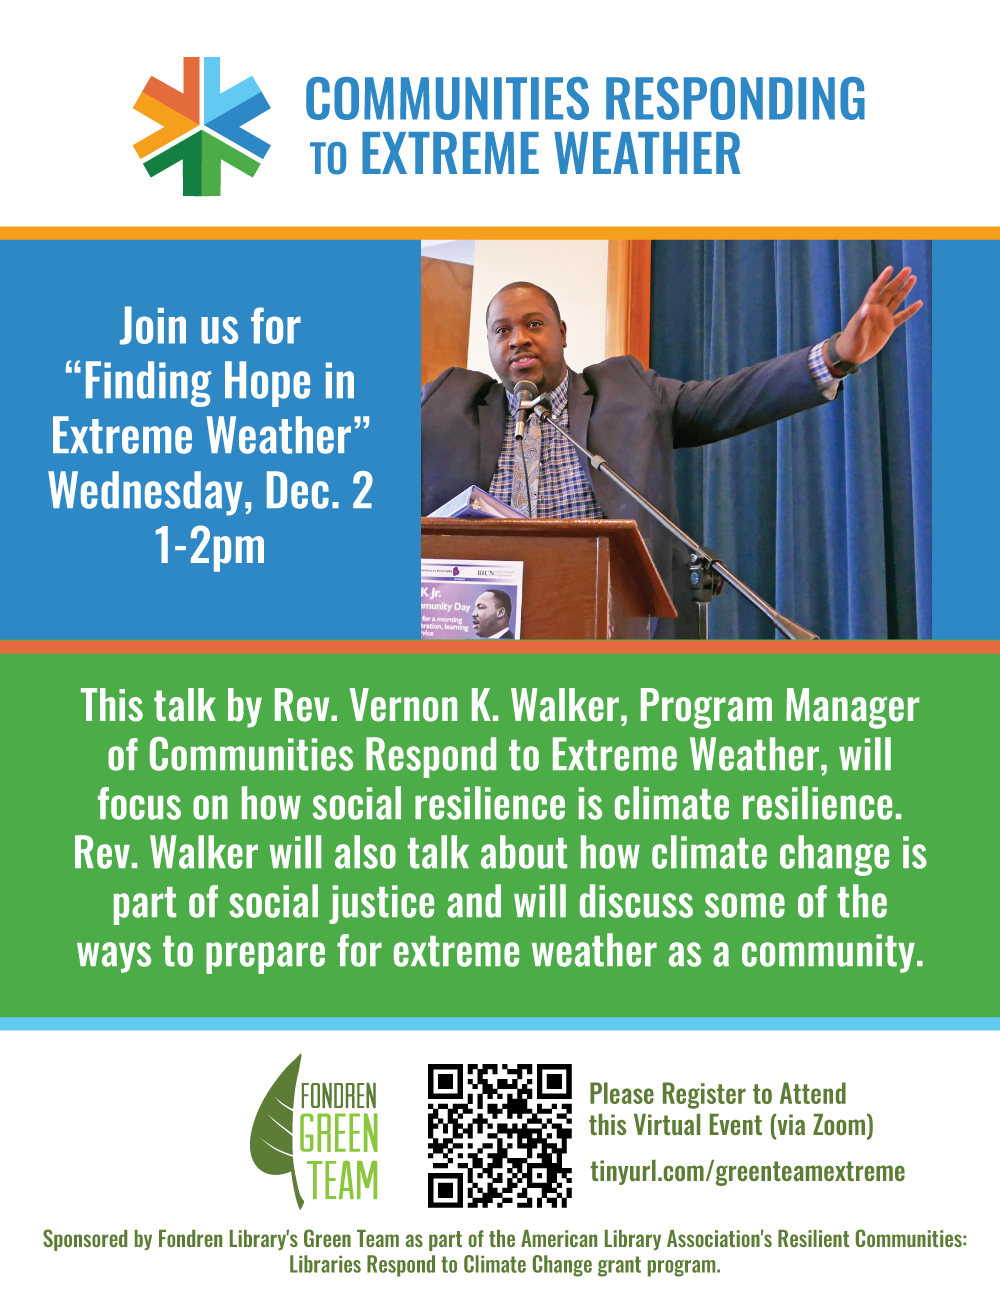 "Join us for ""Finding Hope in Extreme Weather"" Wednesday, Dec. 2 from 1-2pm  This talk by Rev. Vernon K. Walker, Program Manager of Communities Respond to Extreme Weather, will focus on how social resilience is climate resilience. Rev. Walker will also talk about how climate change is part of social justice and will discuss some of the ways to prepare for extreme weather as a community."